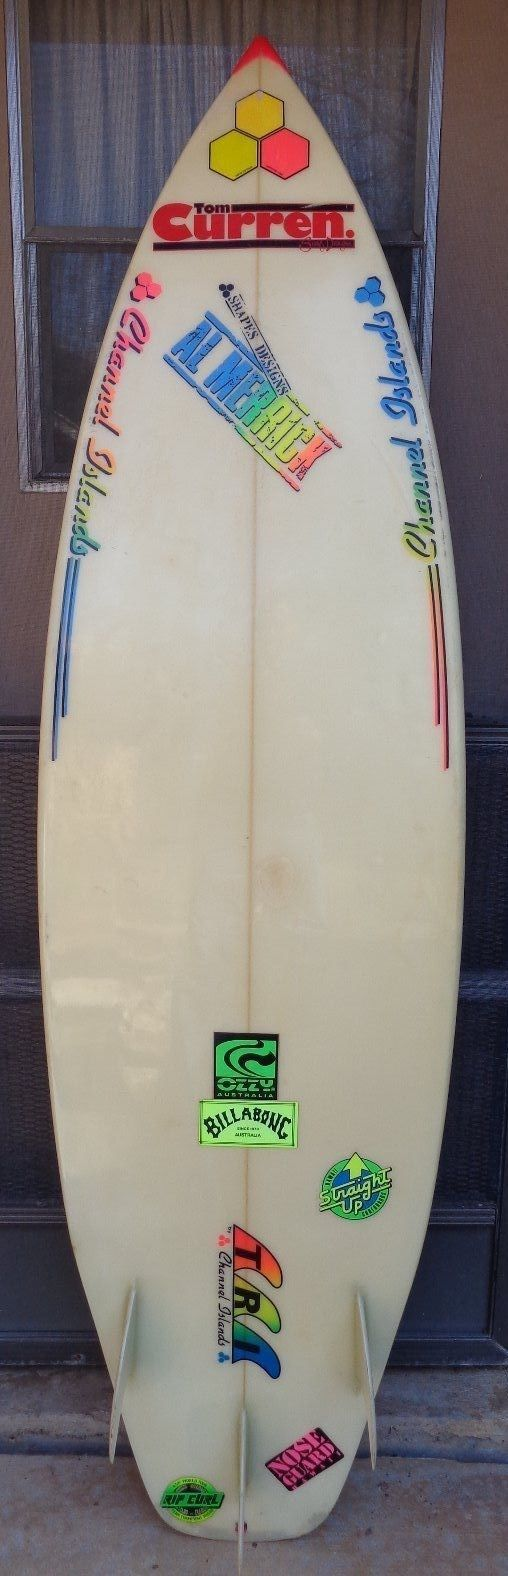 "Al Merrick Tom Curren Surf Designs 6'2"" 80s Channel Islands Surfboard 